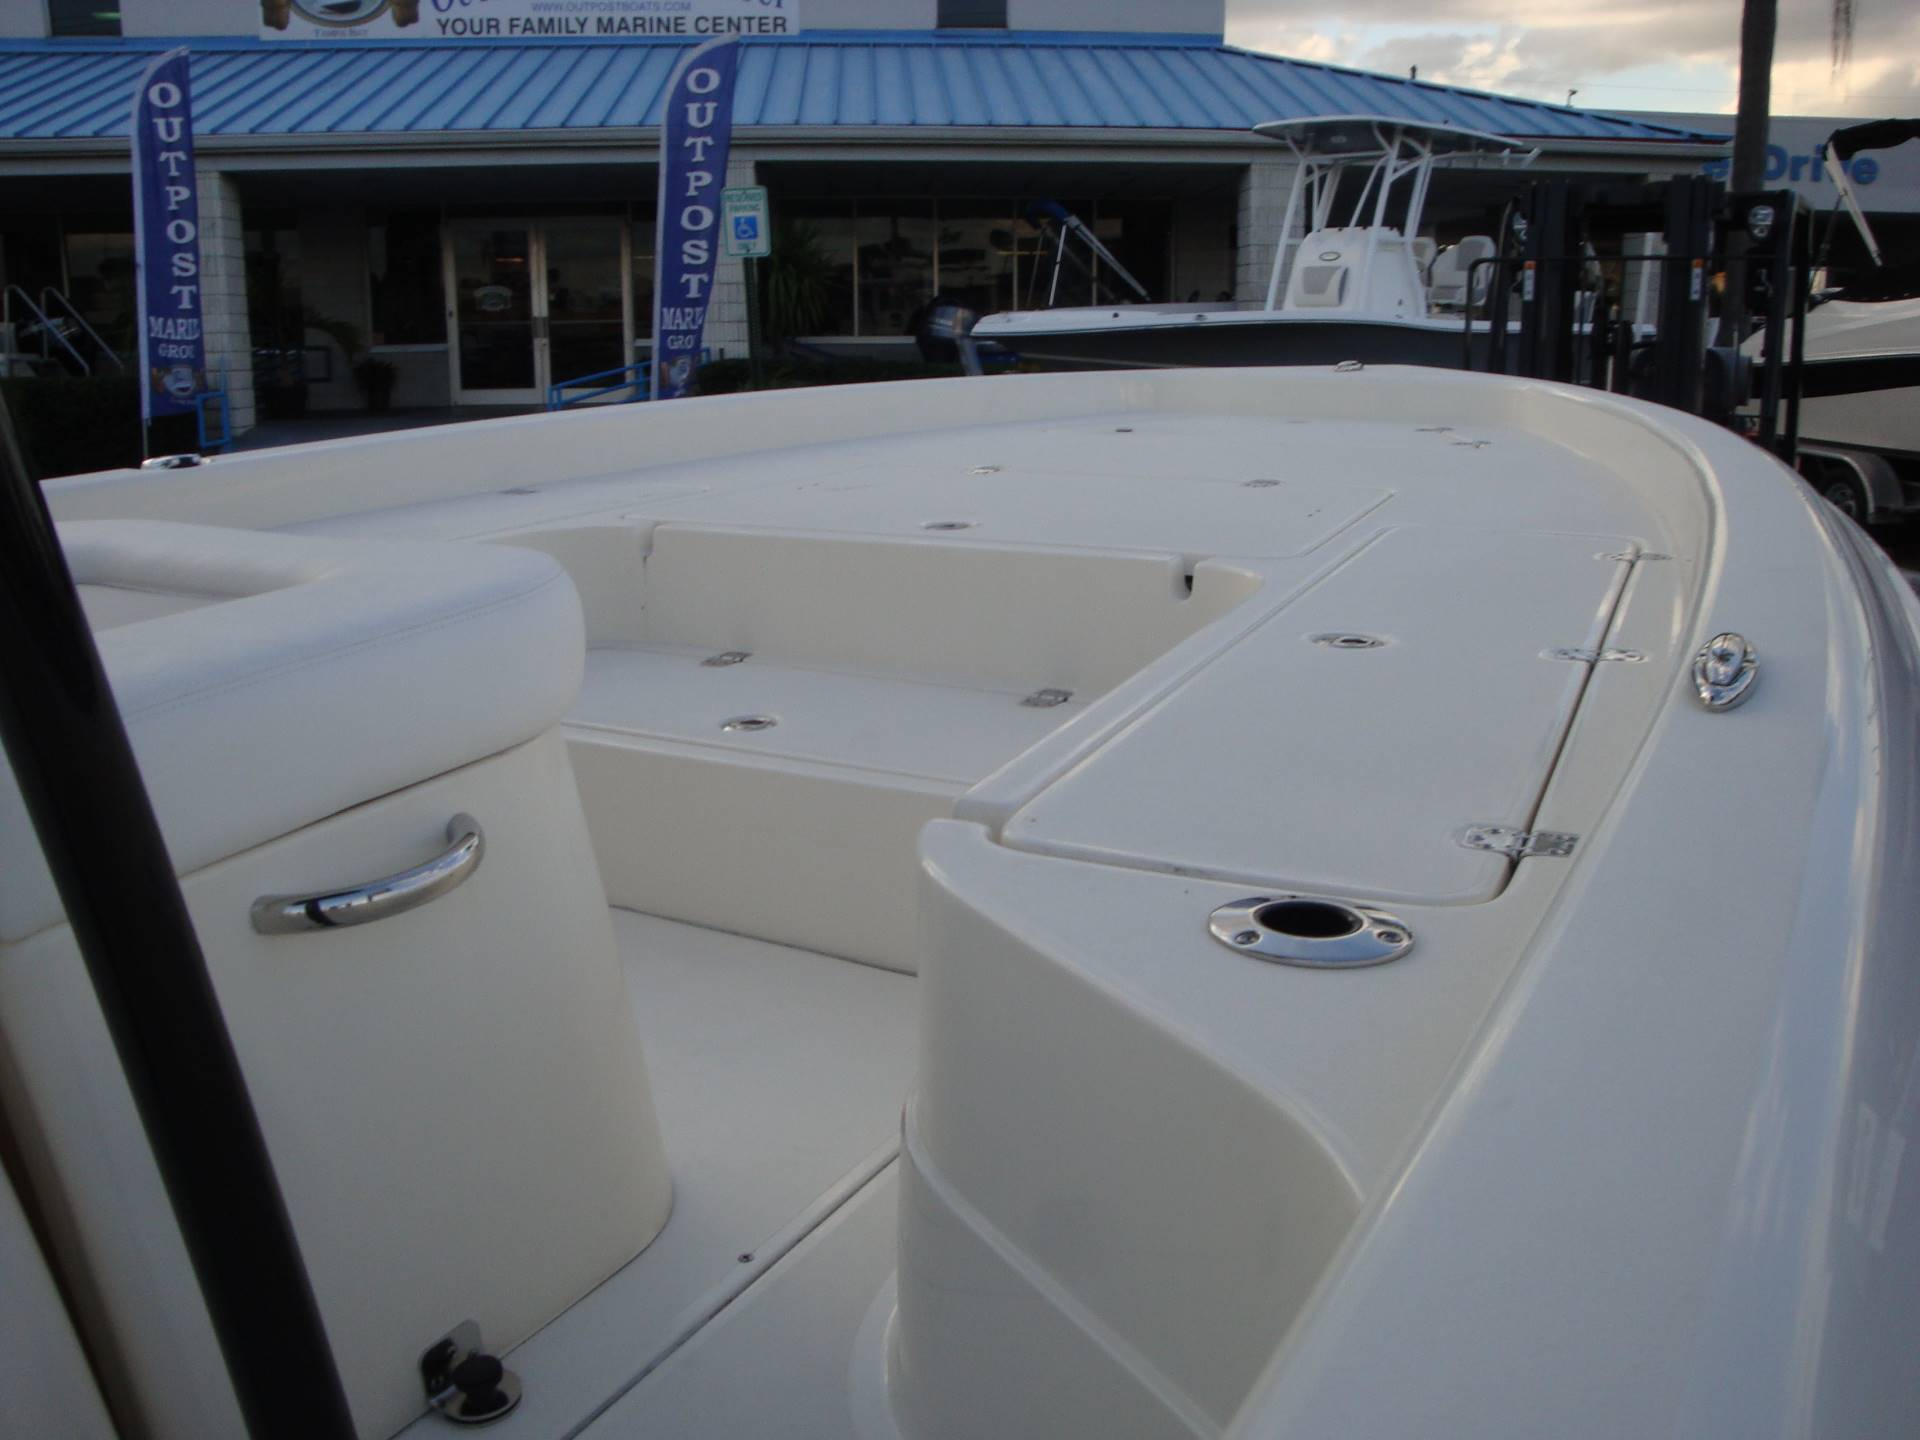 2019 ShearWater 23LTZ in Holiday, Florida - Photo 37